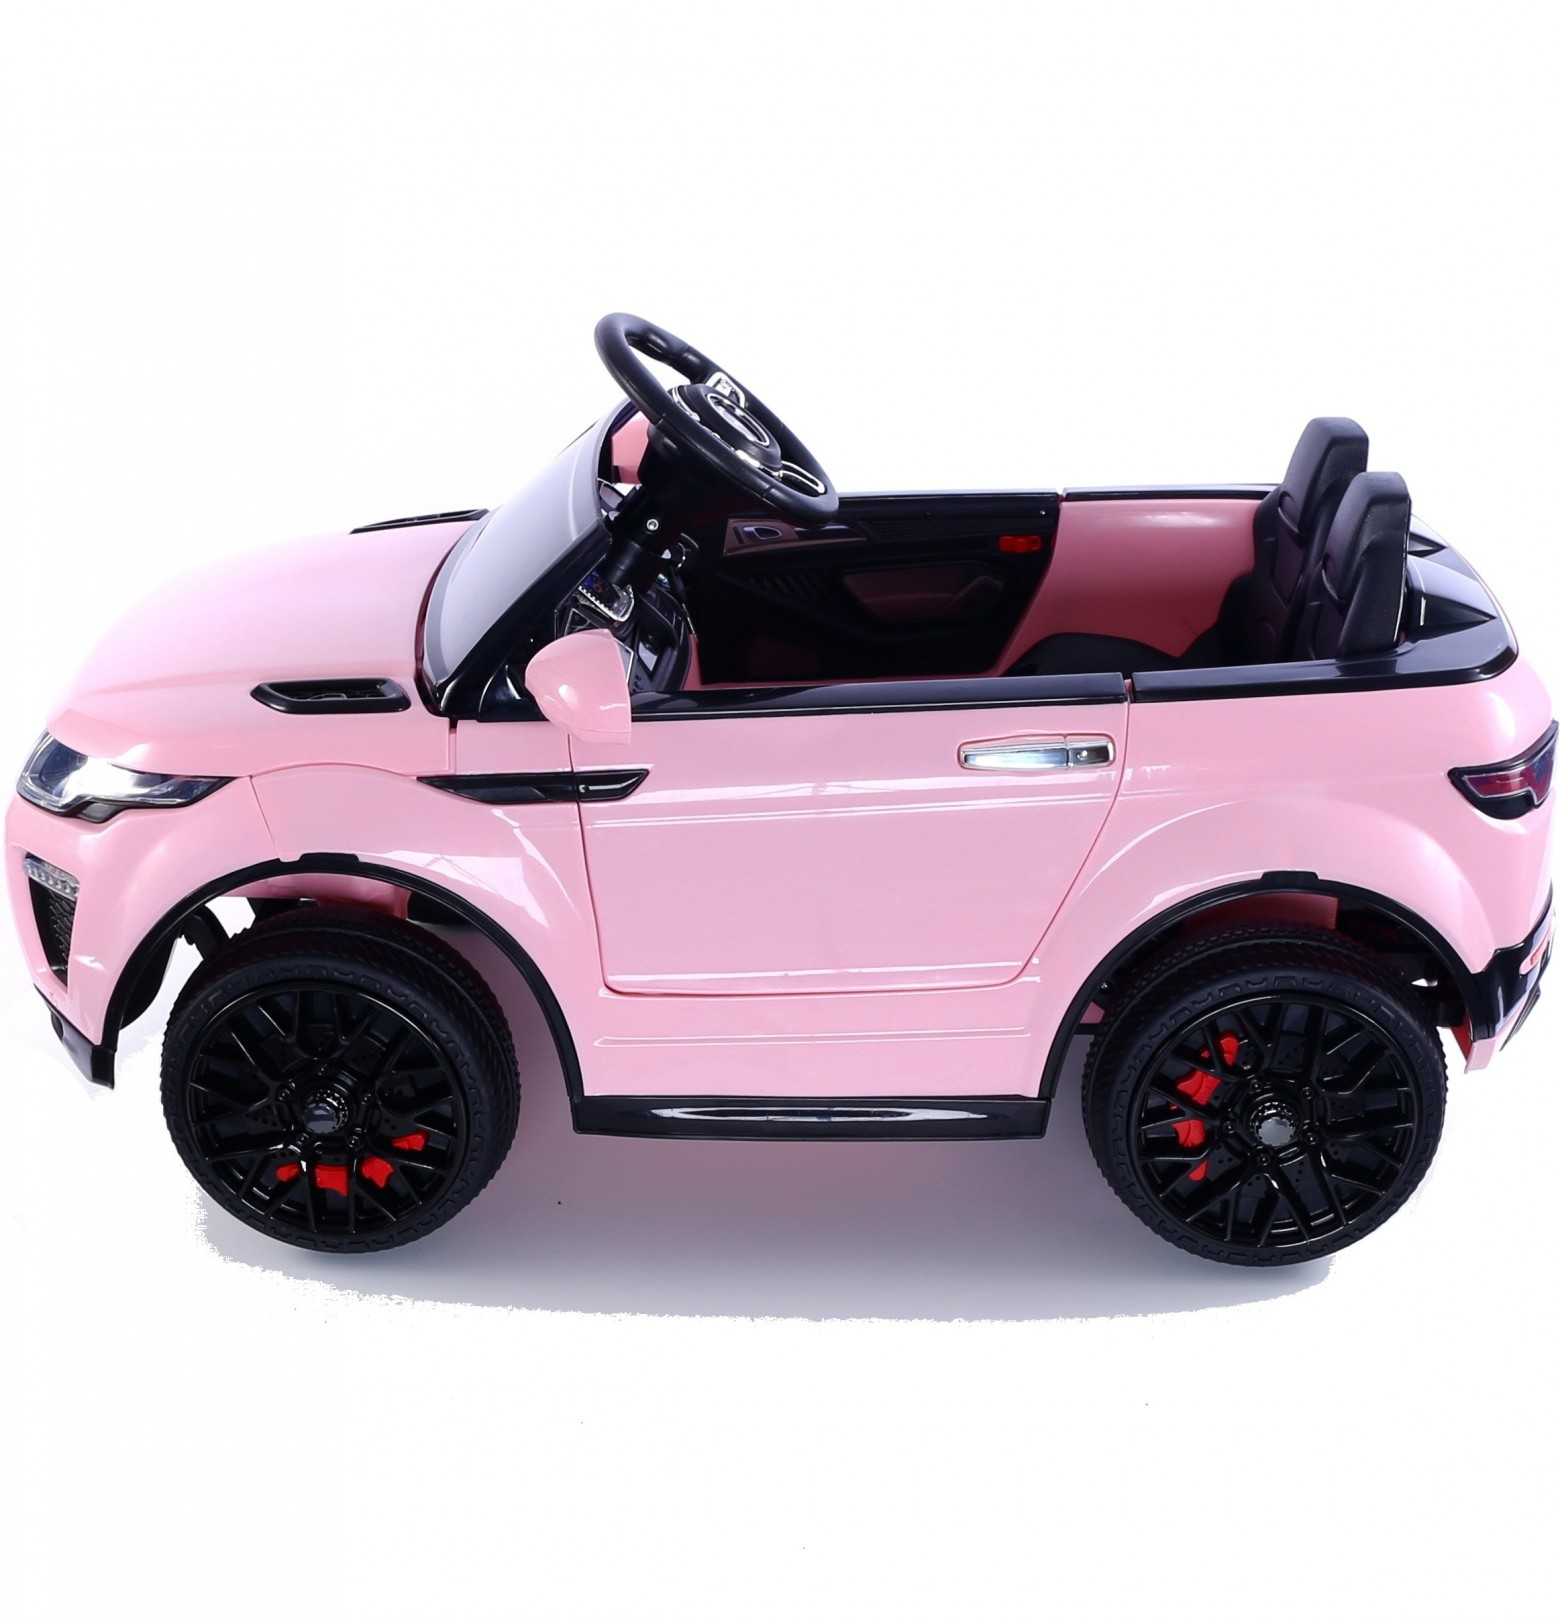 range rover evoque style 12v ride on pink